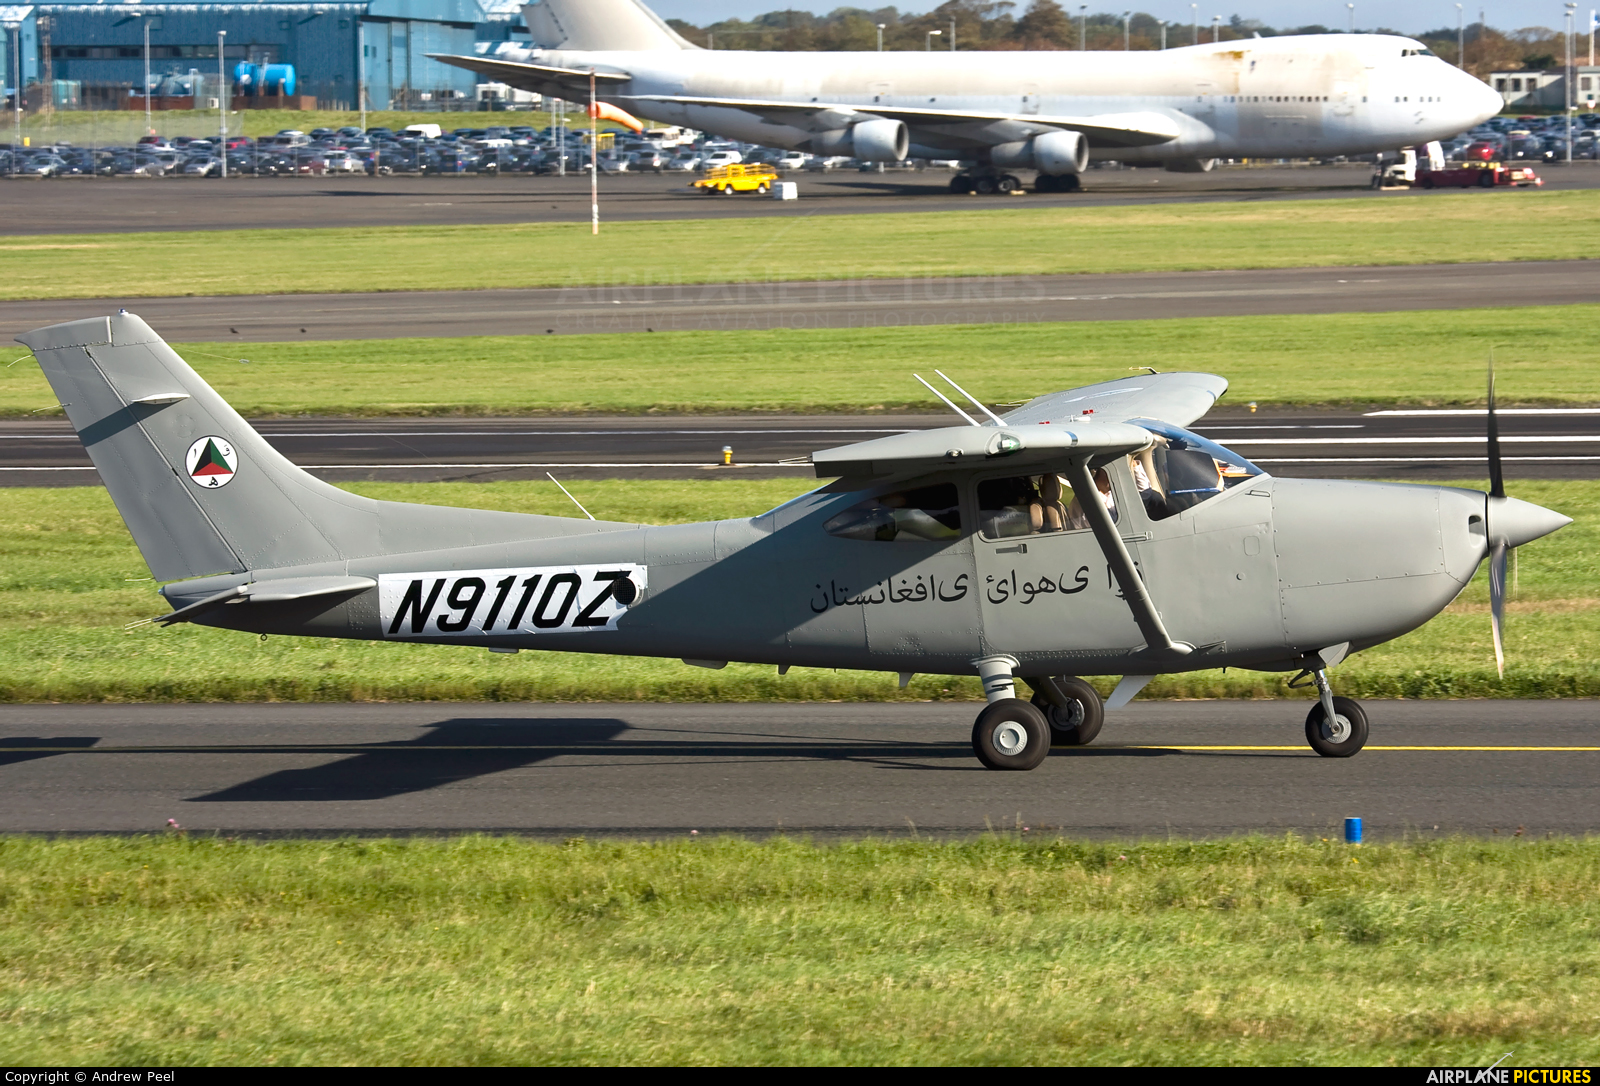 Afghanistan - Air Force N9110Z aircraft at Prestwick